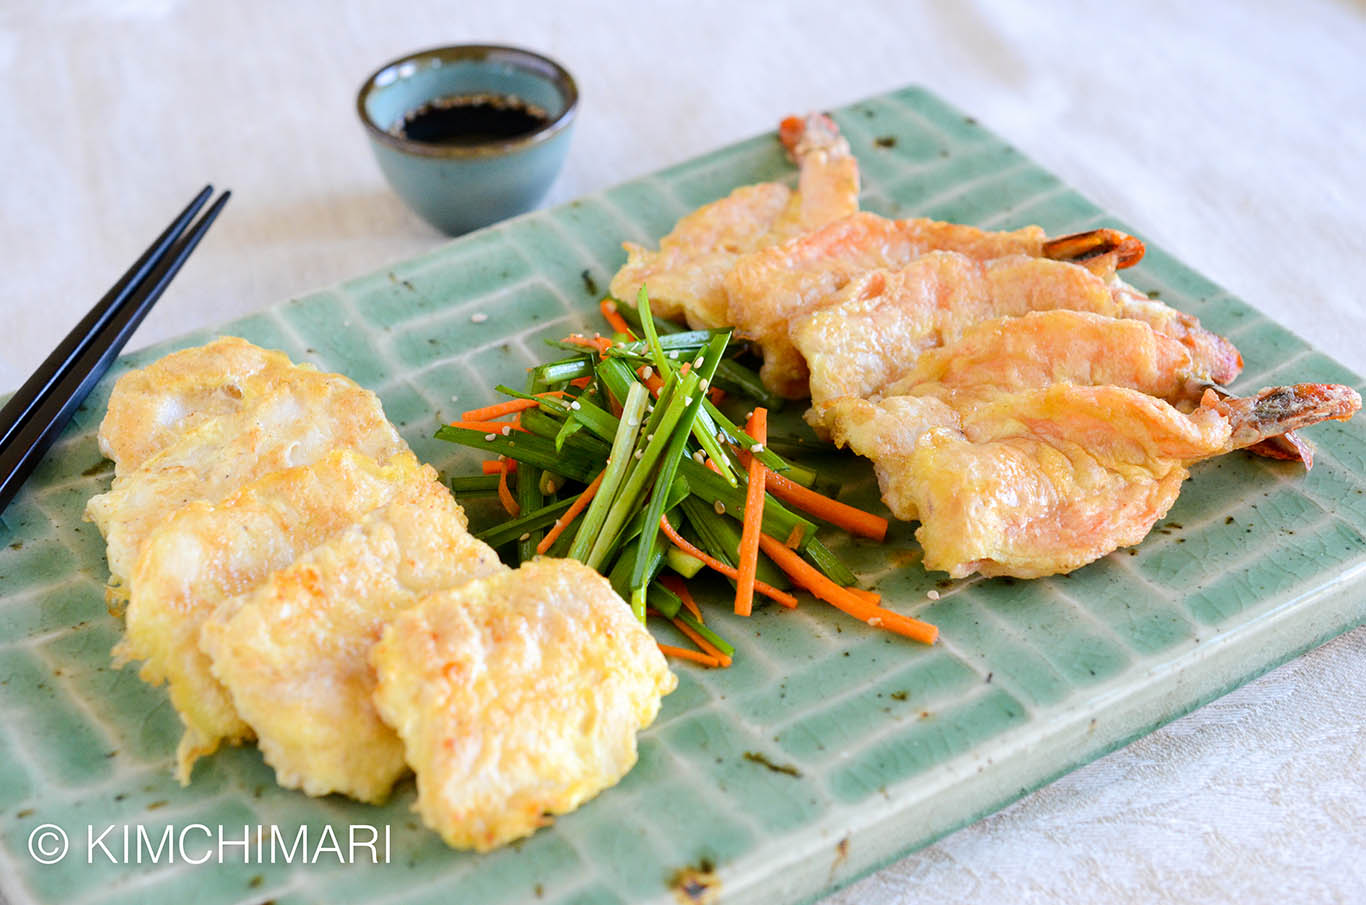 Pan fried Cod Jeon (saensun jeon) and Shrimp Jeon (saewoo jeon) served with chive salad